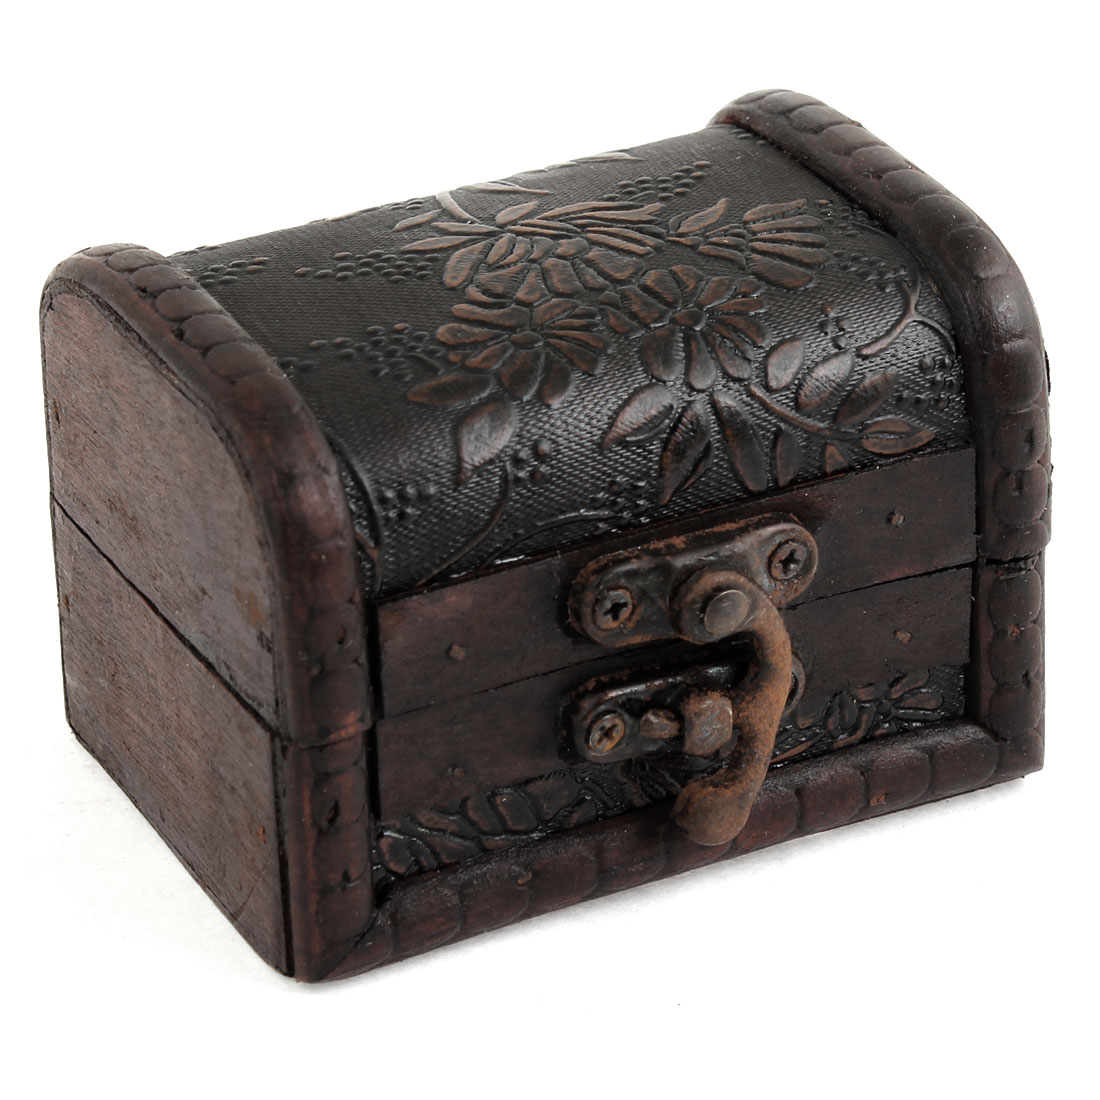 Wooden Vintage Antique Flower Carved Buckle Jewelry Storage Box Container Case